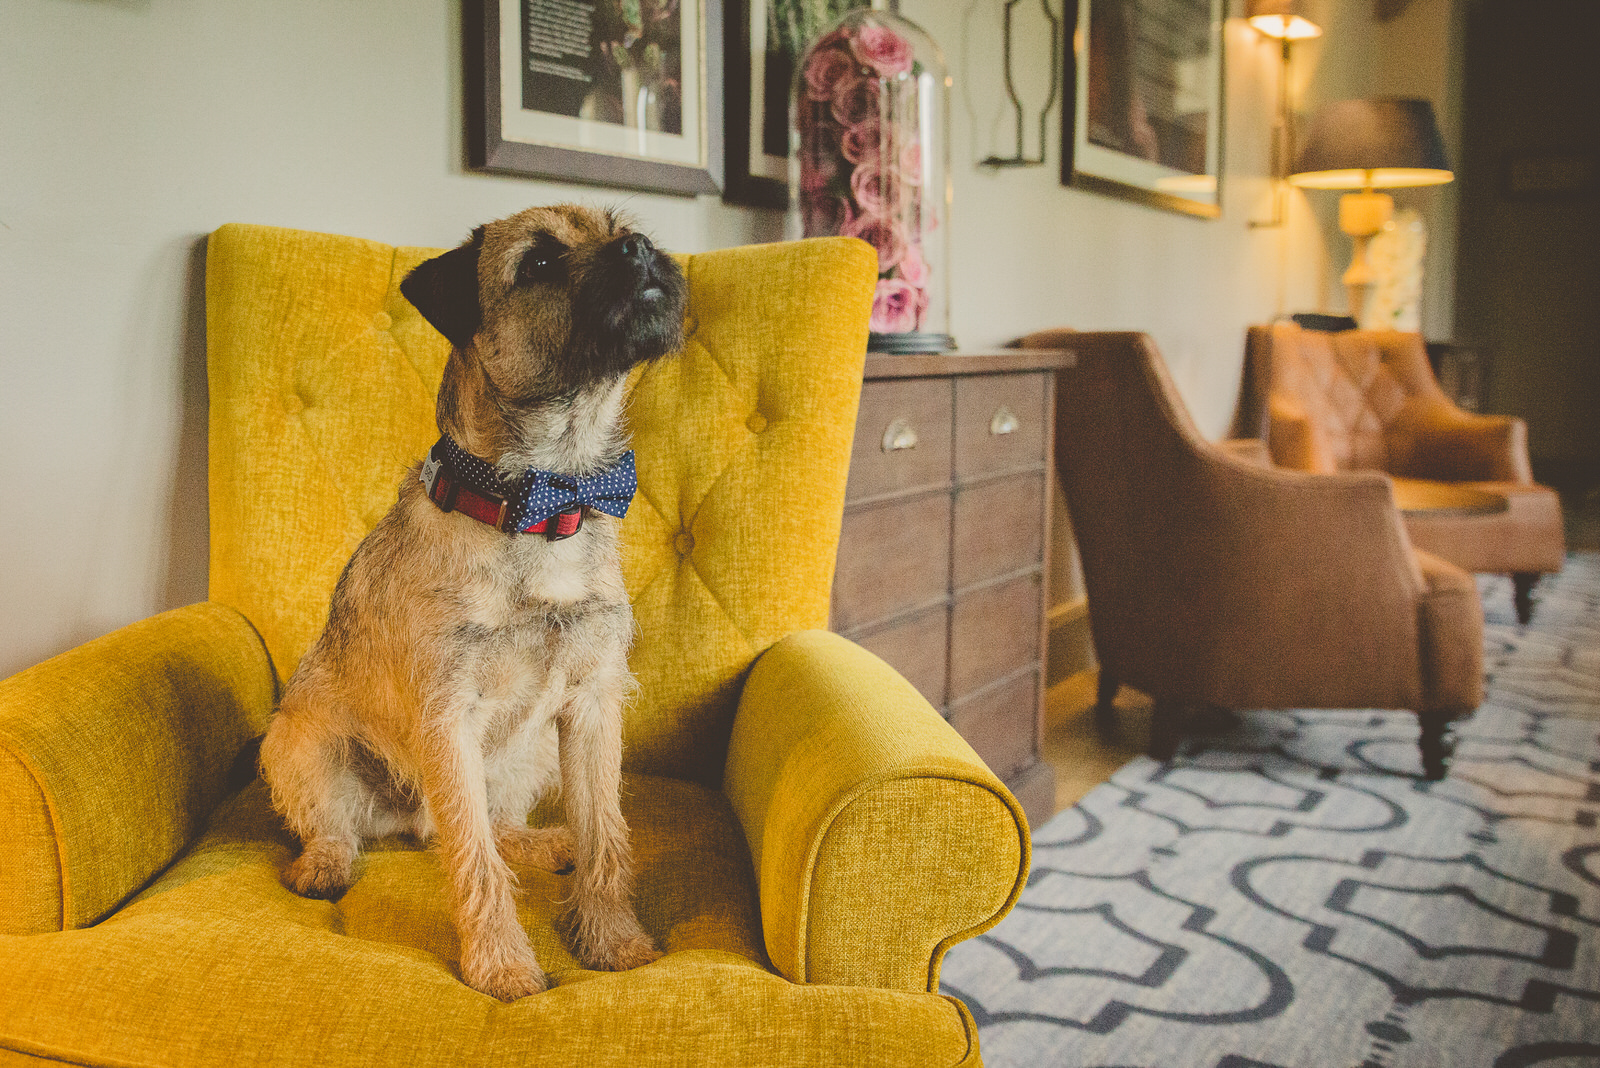 Dog sitting on yellow chair